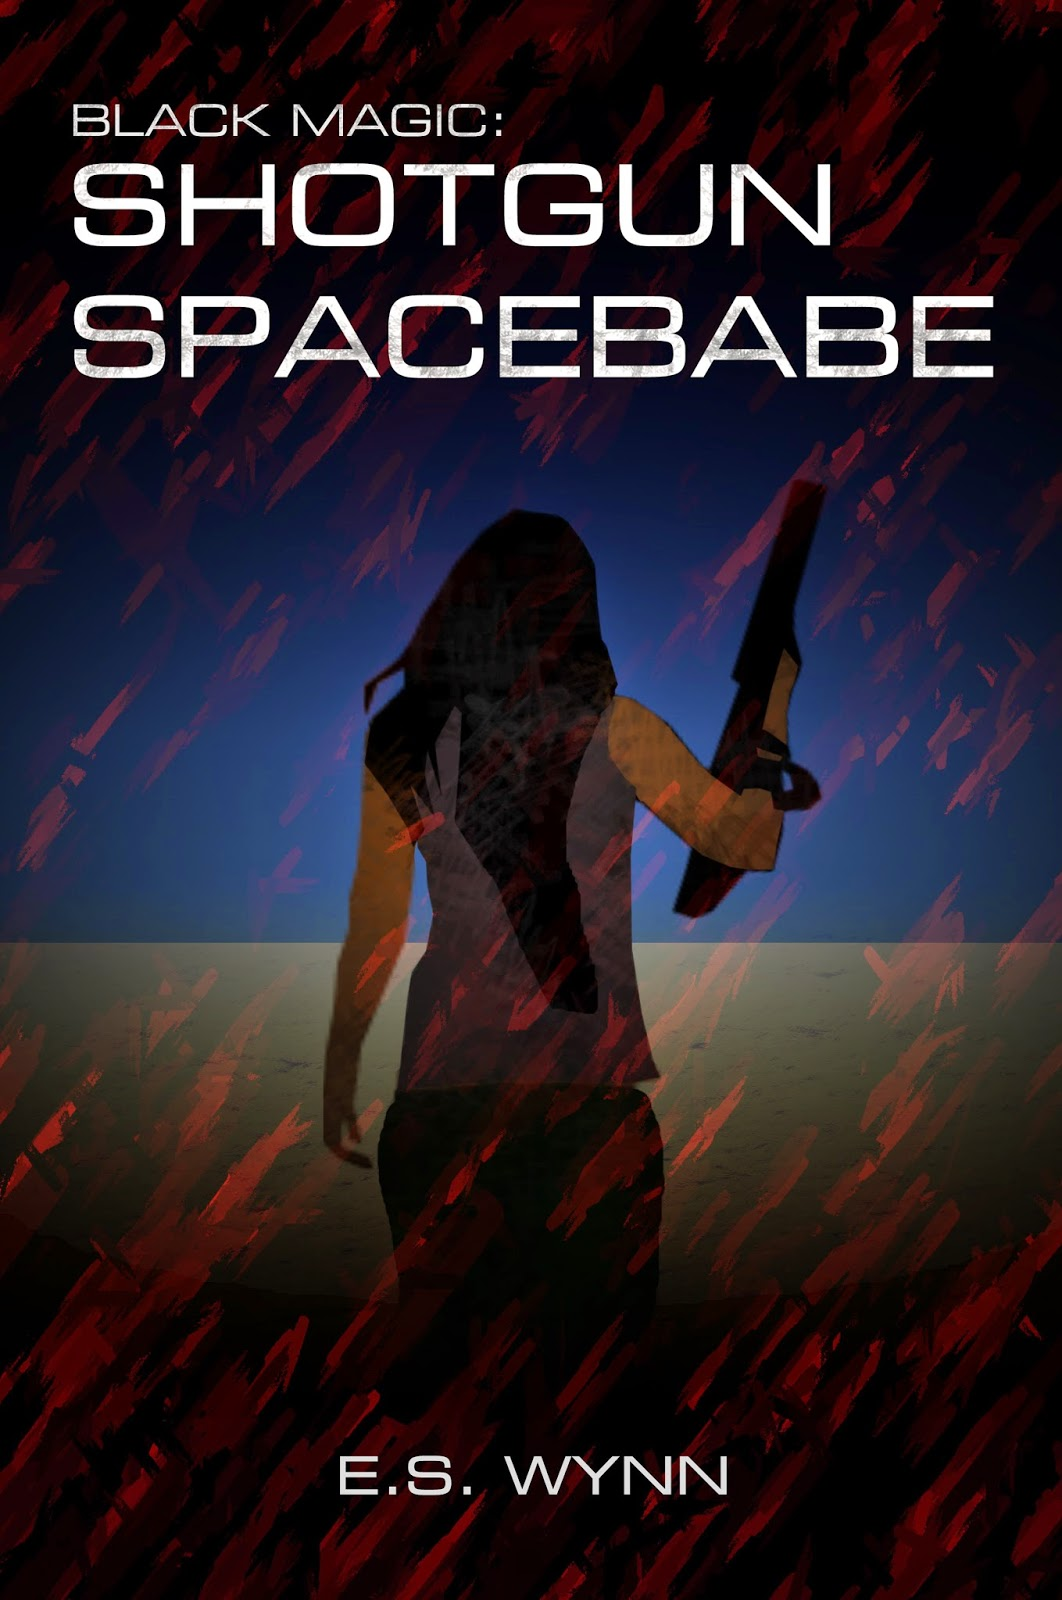 Black Magic: Shotgun Spacebabe